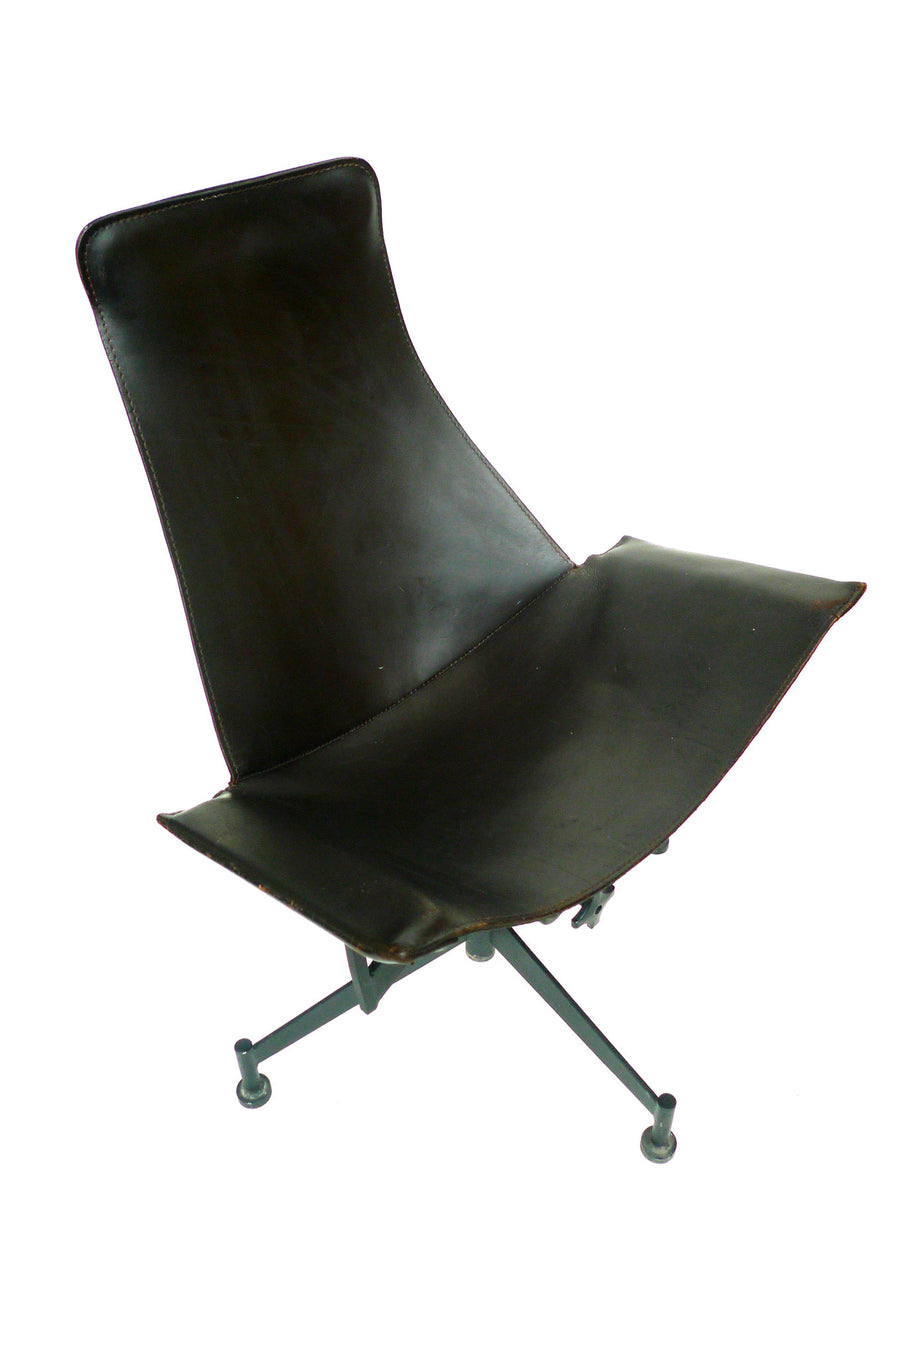 Fabricius & Kastholm Style Leather Chair